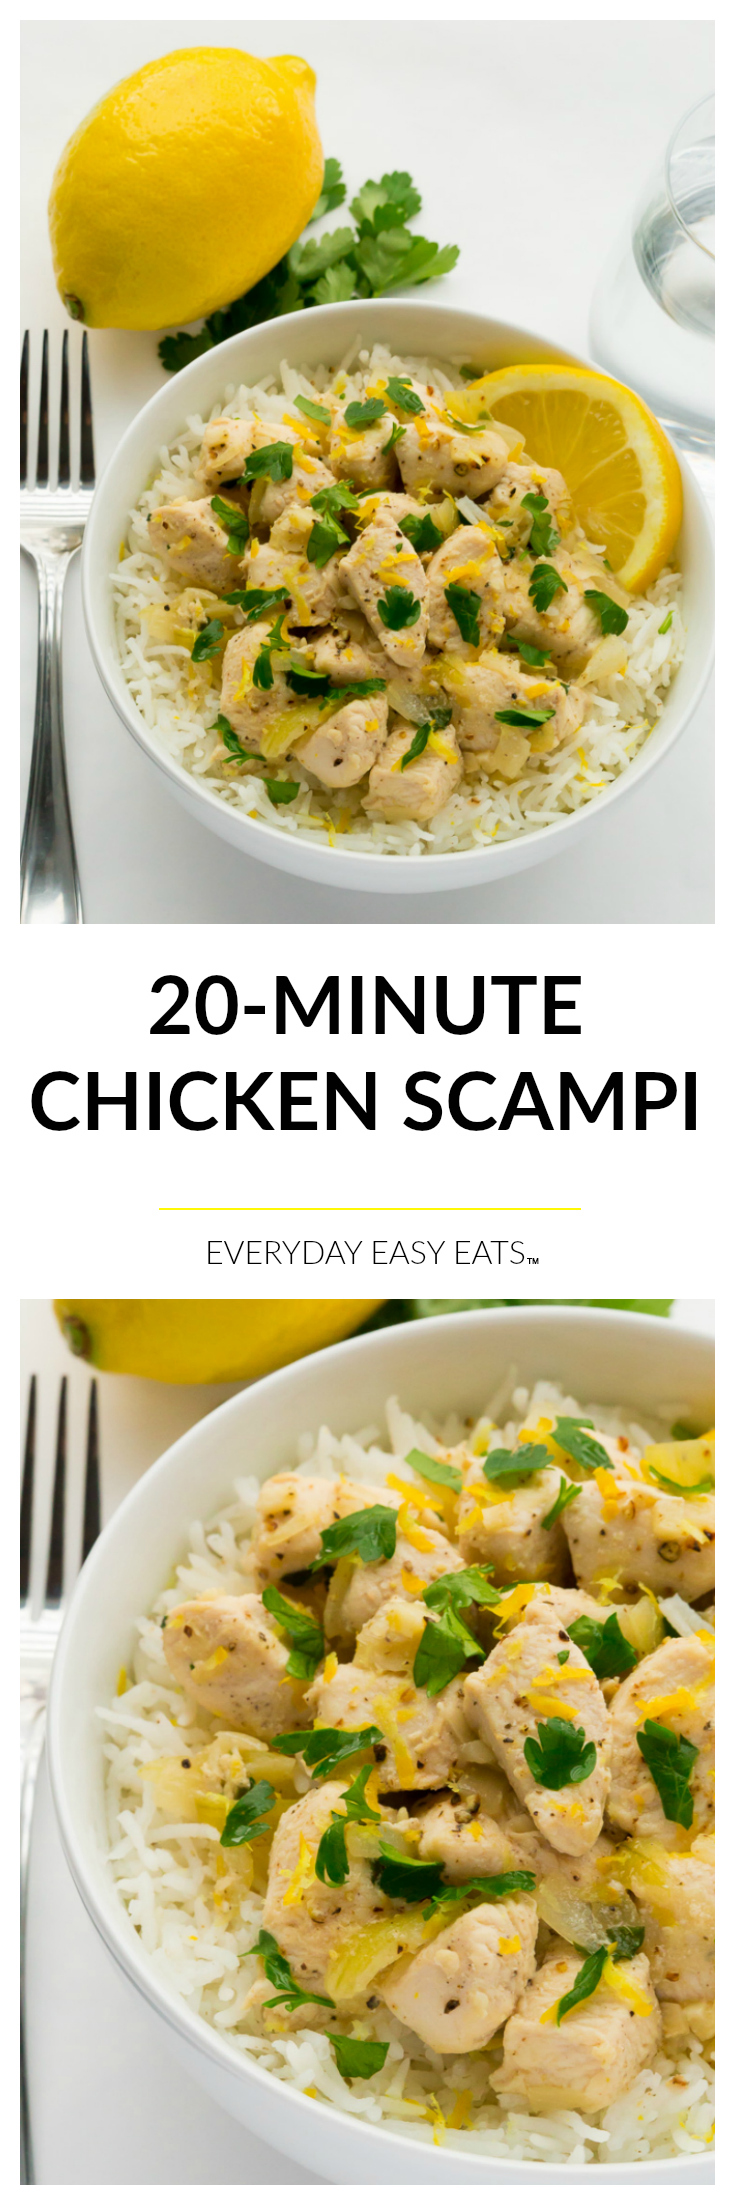 20-Minute Chicken Scampi - Perfect for busy weeknights!   Recipe at EverydayEasyEats.com